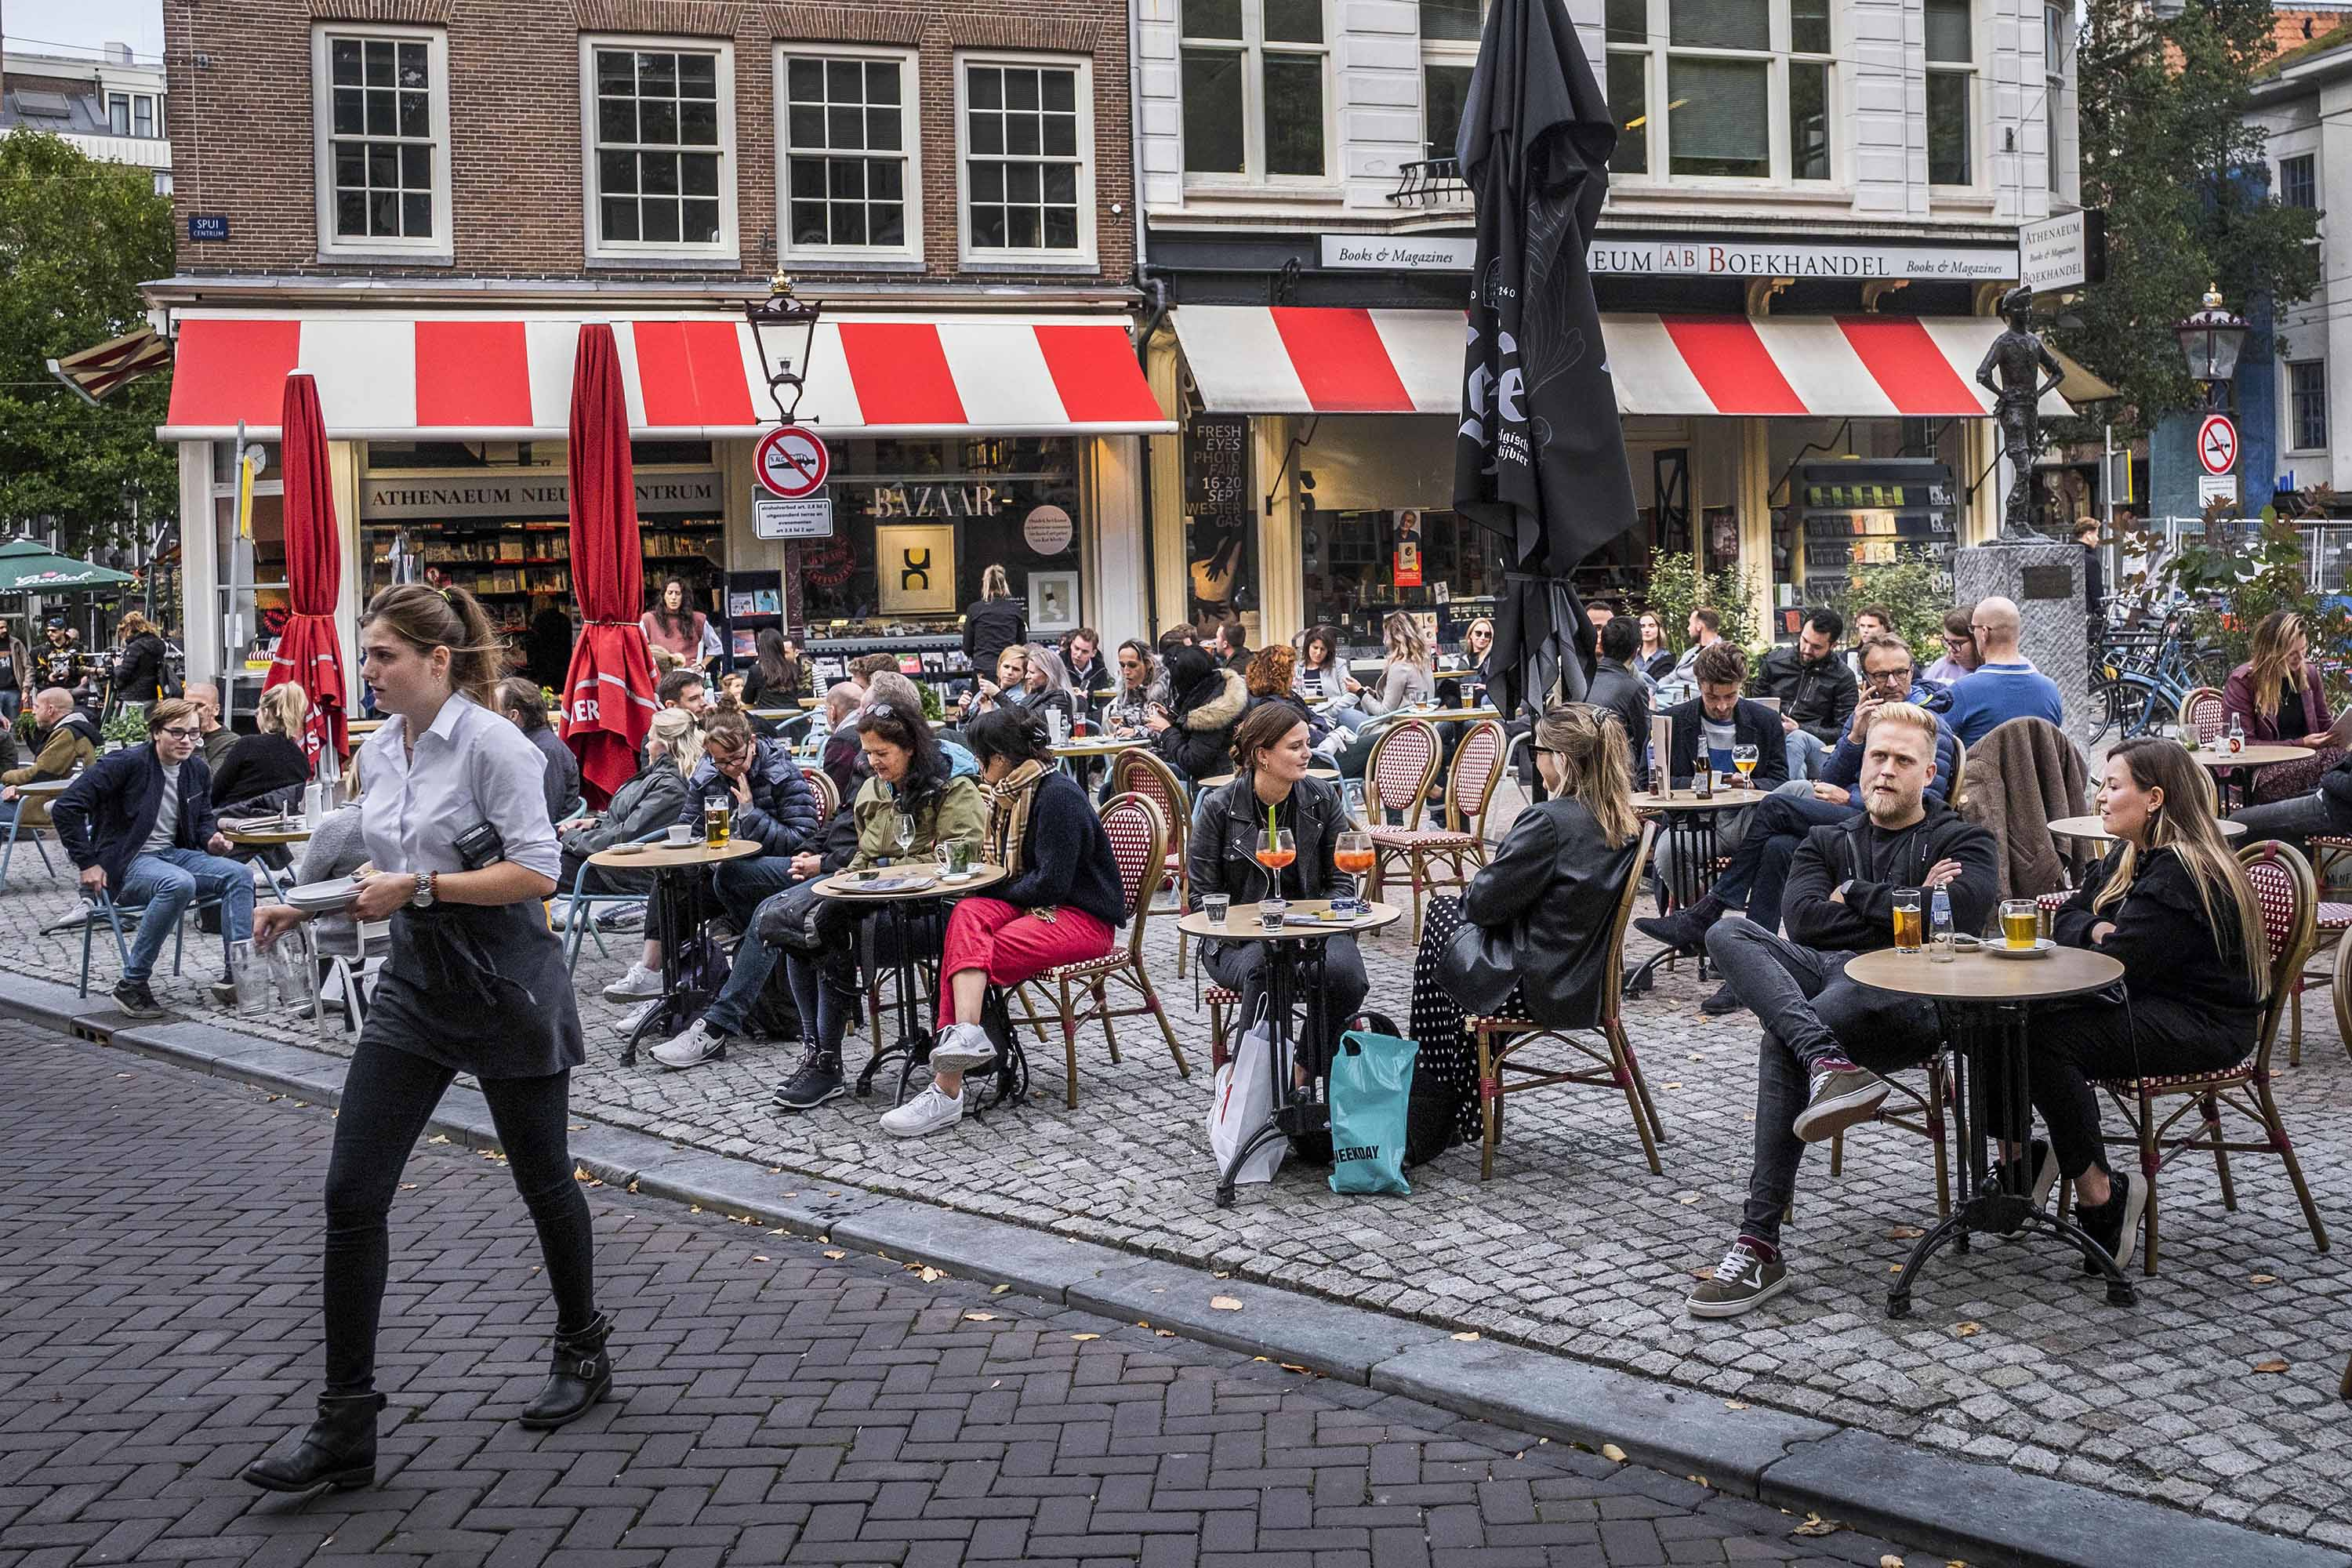 People sit at cafe terrace in Amsterdam, The Netherlands, on September 26.